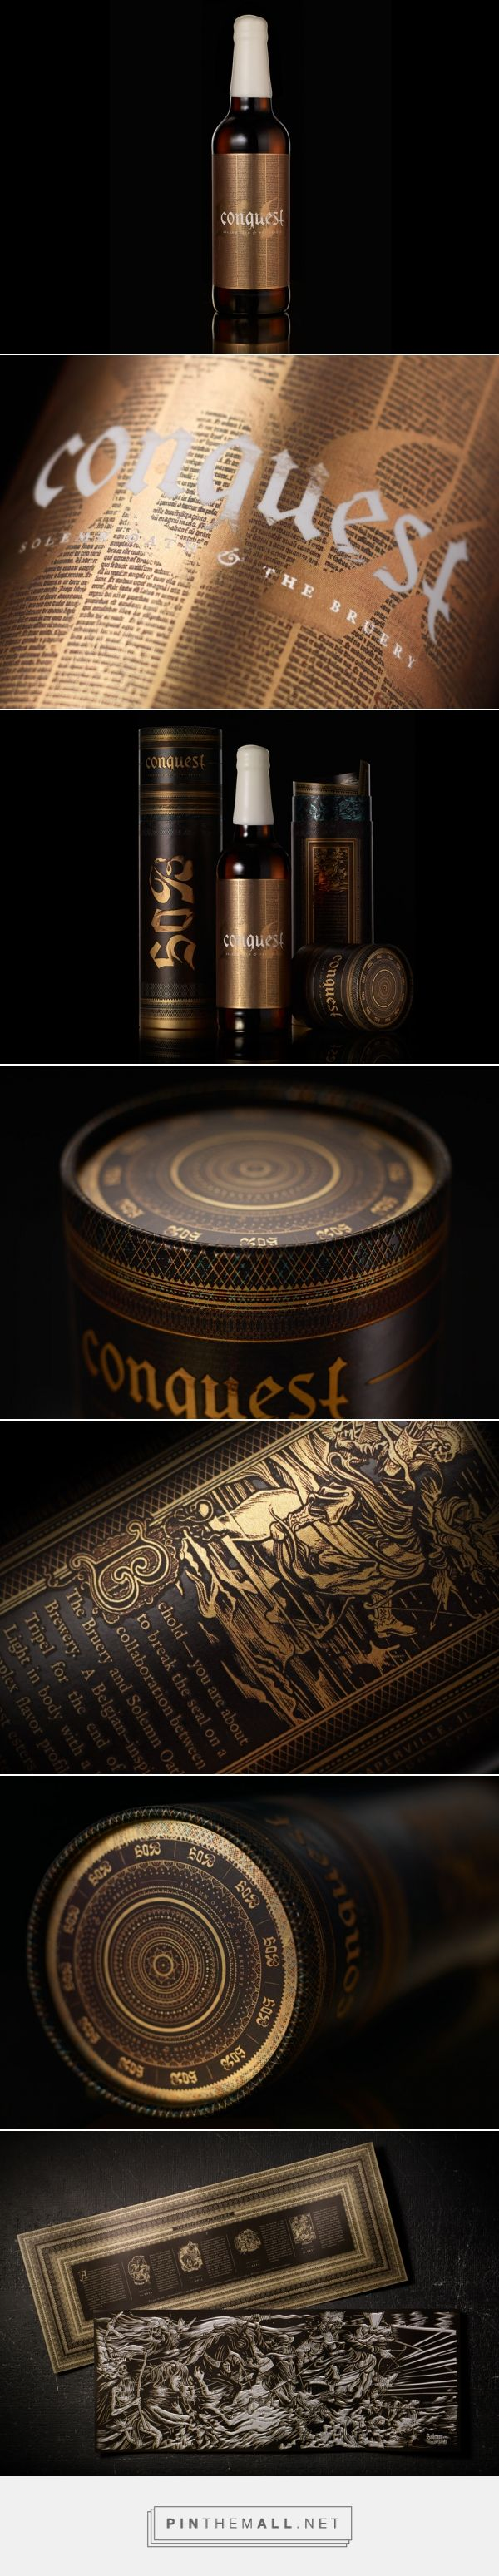 Solemn Oath Conquest special release beer packaging design by Matt Varnish - http://www.packagingoftheworld.com/2016/12/solemn-oath-conquest-special-release.html